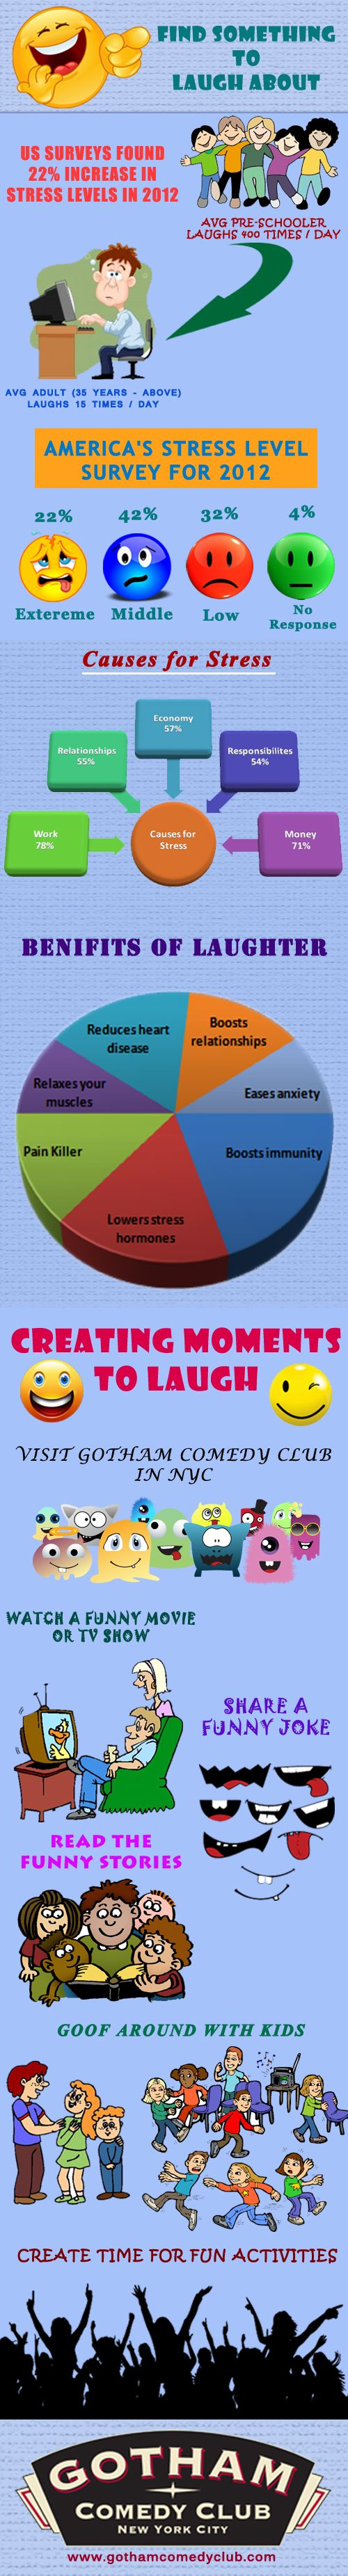 Even in the toughest of times, it's possible to finding something to laugh about. And what's really important when you're aiming to spread laughter is laughter only. Gotham Comedy Club is a venue for stand-up comedy in New York City. Find the funny stand up for your laughter and get your most funny moments here at Gotham comedy club NYC. http://www.GothamComedyClub.com